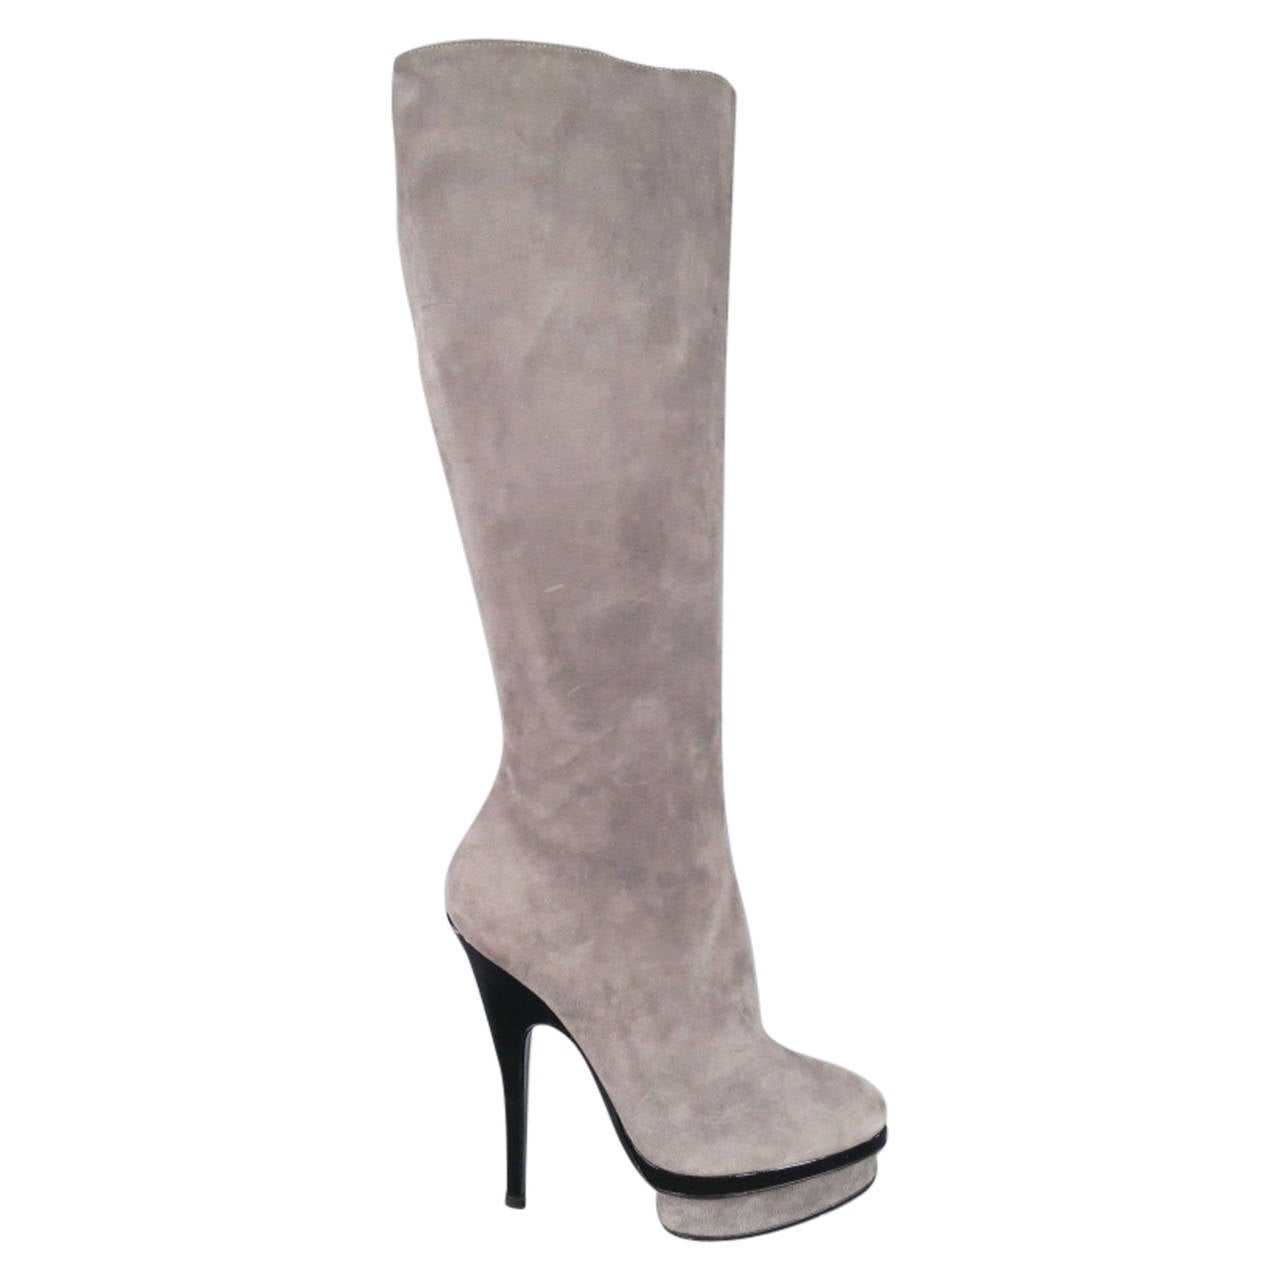 YSL Size 8 Gray Suede Stacked Platform Knee High Boots 1